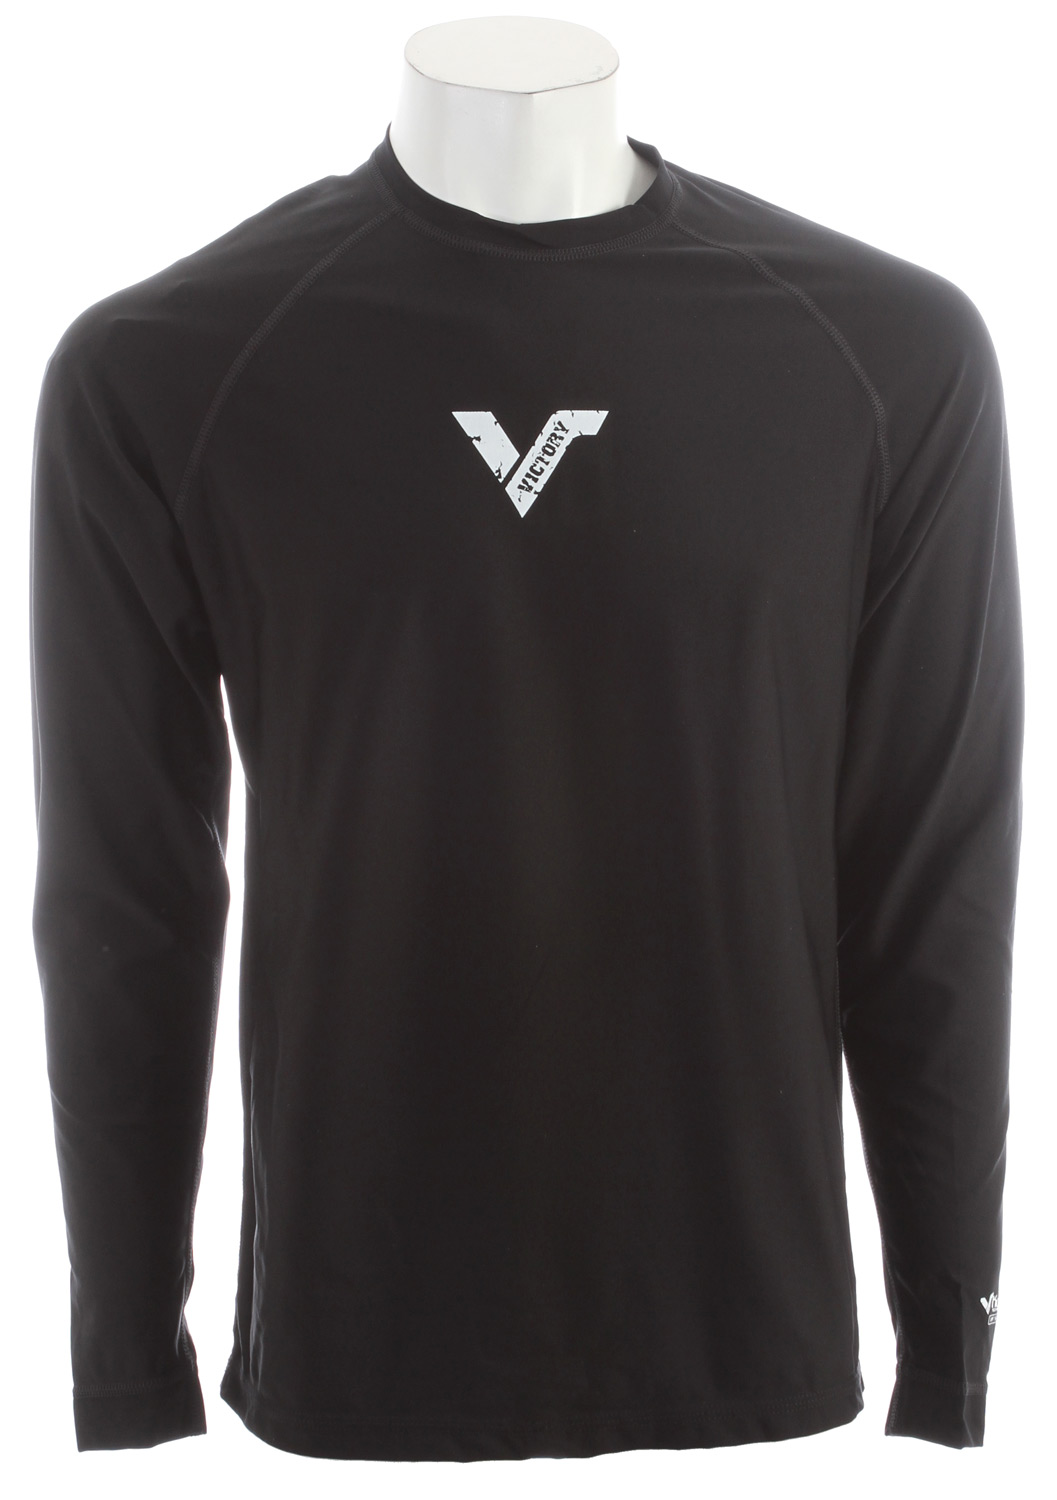 A long sleeve, light-weight shirt made from loosefit Koredry material, so it fits like a regular shirt but still has the water-repellant, quick-drying properties of Koredry. As a loosefit shirt it won't get baggy or soggy when wet, keeping you comfortable in and out of the water. The shirts feature raglan sleeves and flatlock stitching for added comfort and flexibility. Victory Koredry is UPF 50  (equal to SPF 150   giving you great protection against the sun and great insulation so you can stay out longer.Key Features of the Victory Koredry Loose Fit L/S Rash Guard: They feature flatlock stitching Raglan cut sleeves for superior fit and movement Triple needle cover stitch hems. - $32.95